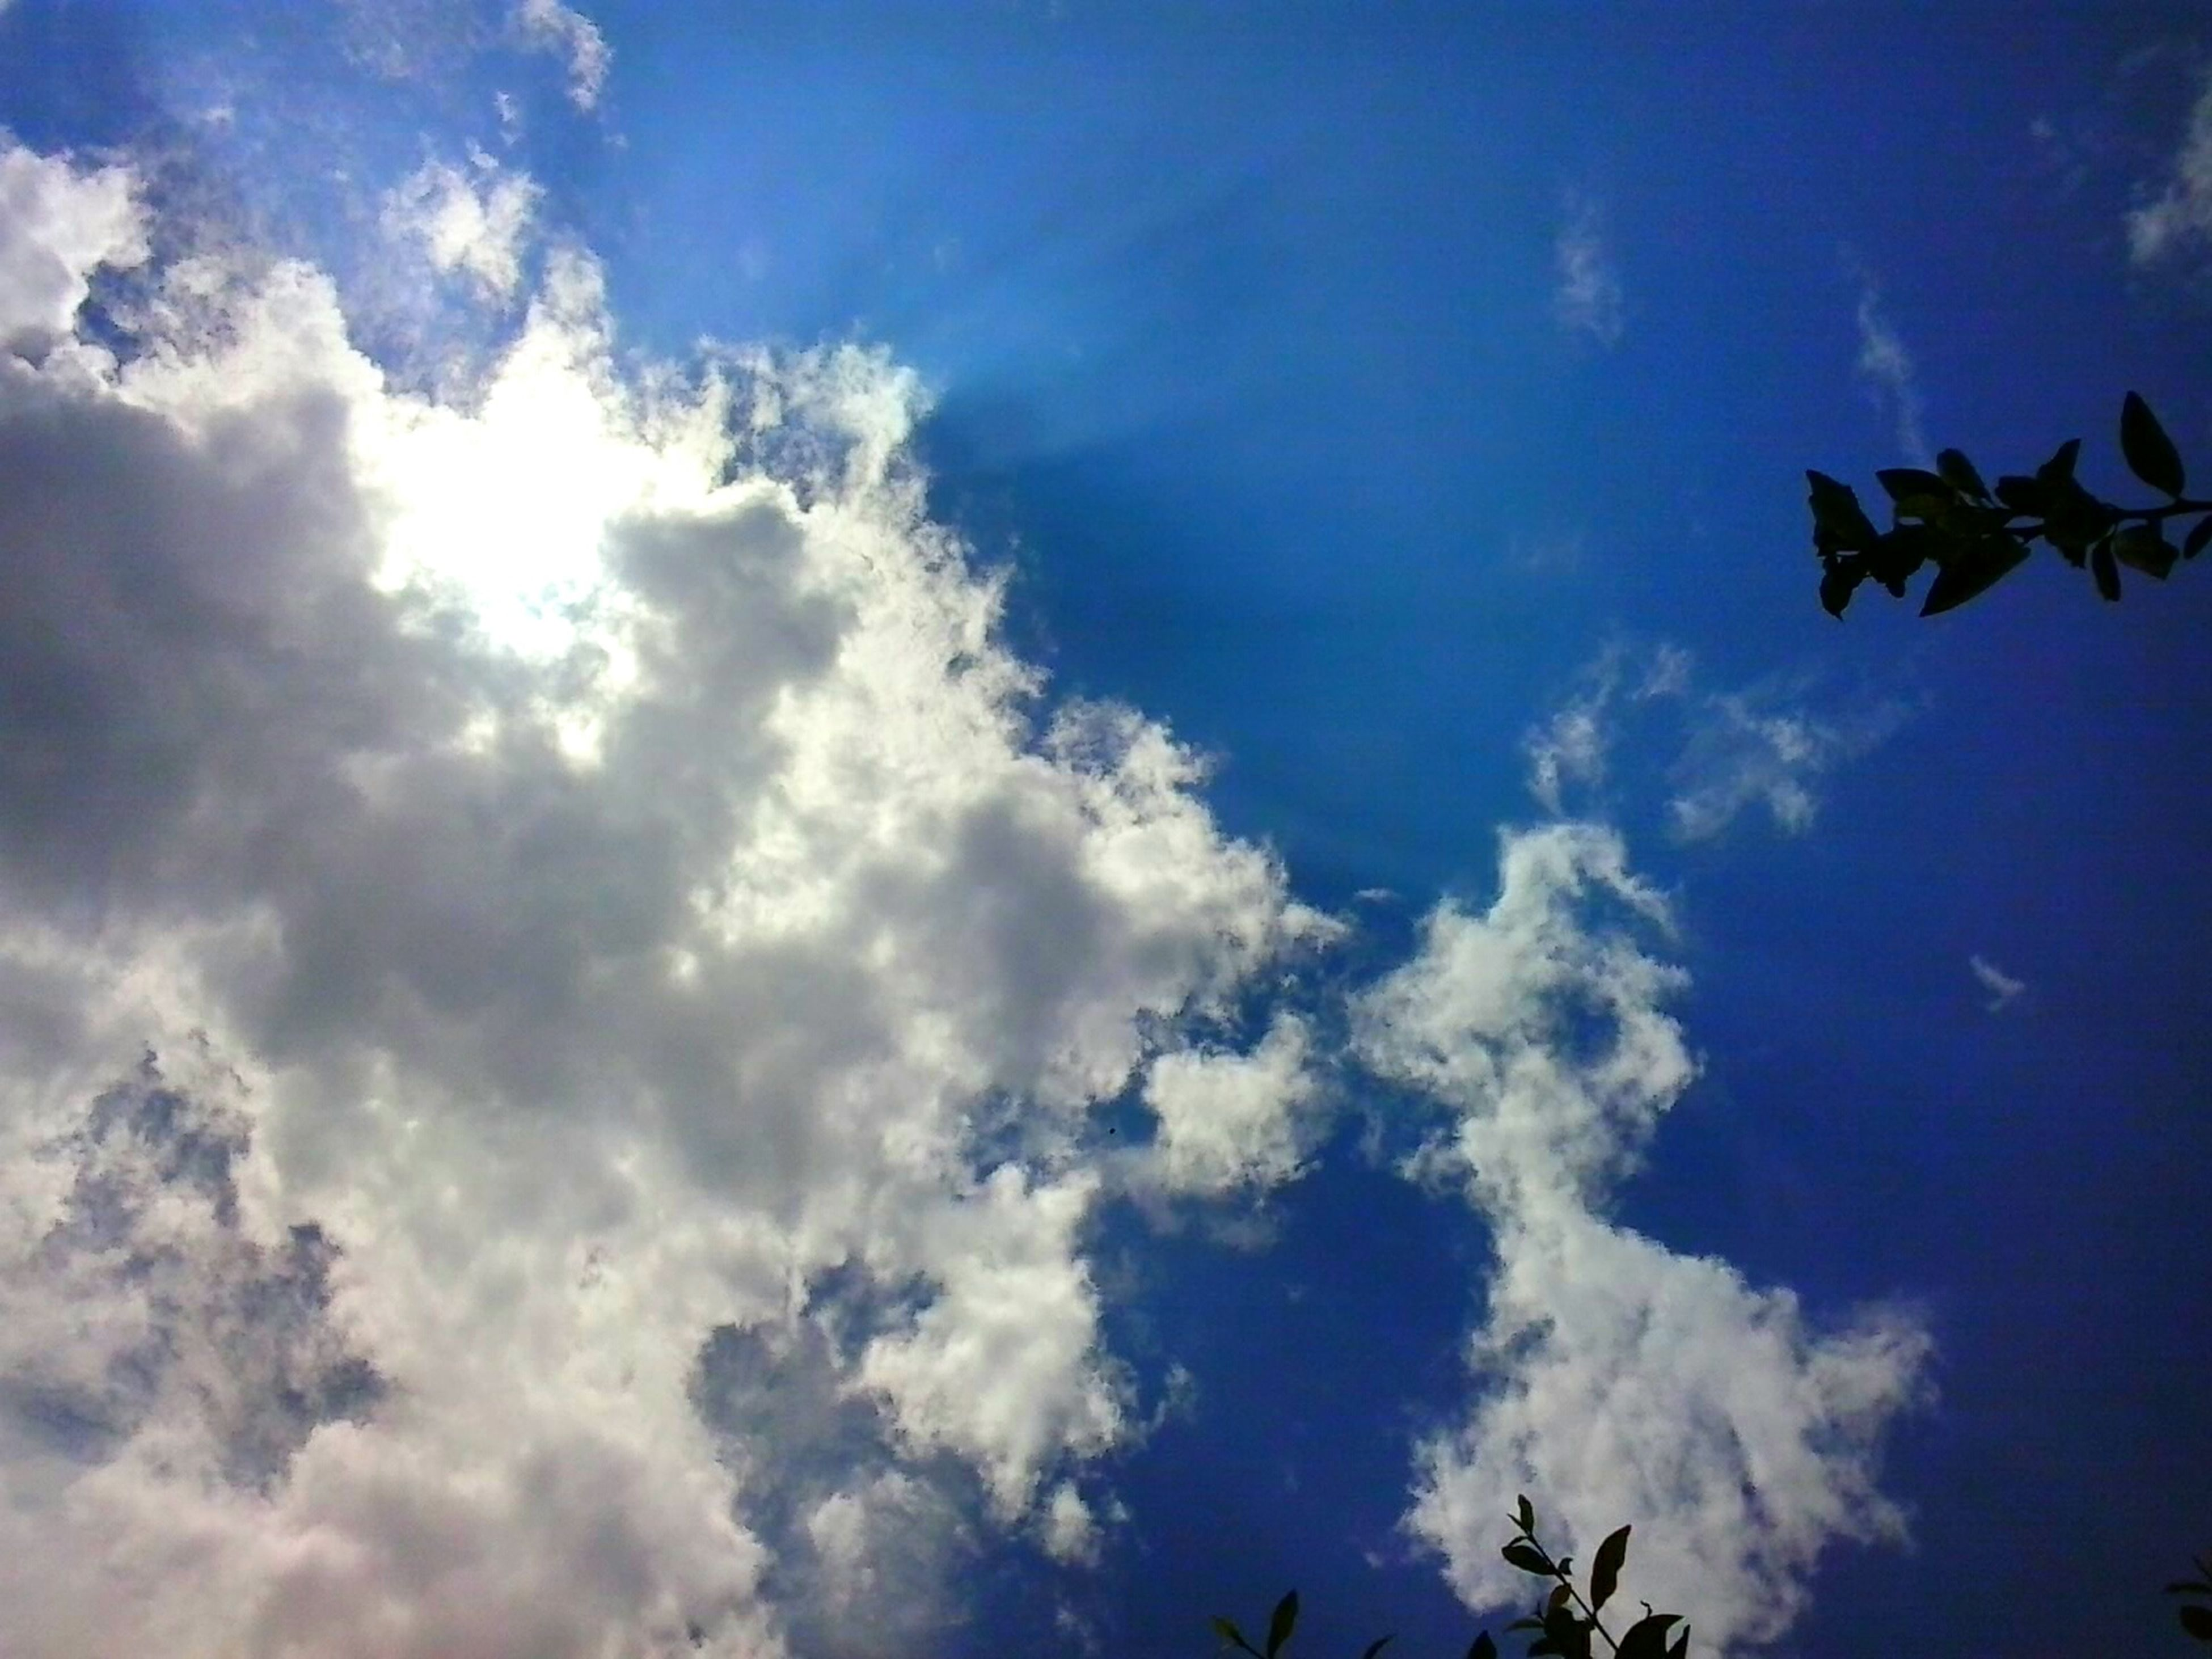 low angle view, sky, cloud - sky, blue, beauty in nature, cloudy, cloud, tranquility, nature, sky only, scenics, cloudscape, tranquil scene, sunlight, outdoors, day, no people, white color, idyllic, sunbeam